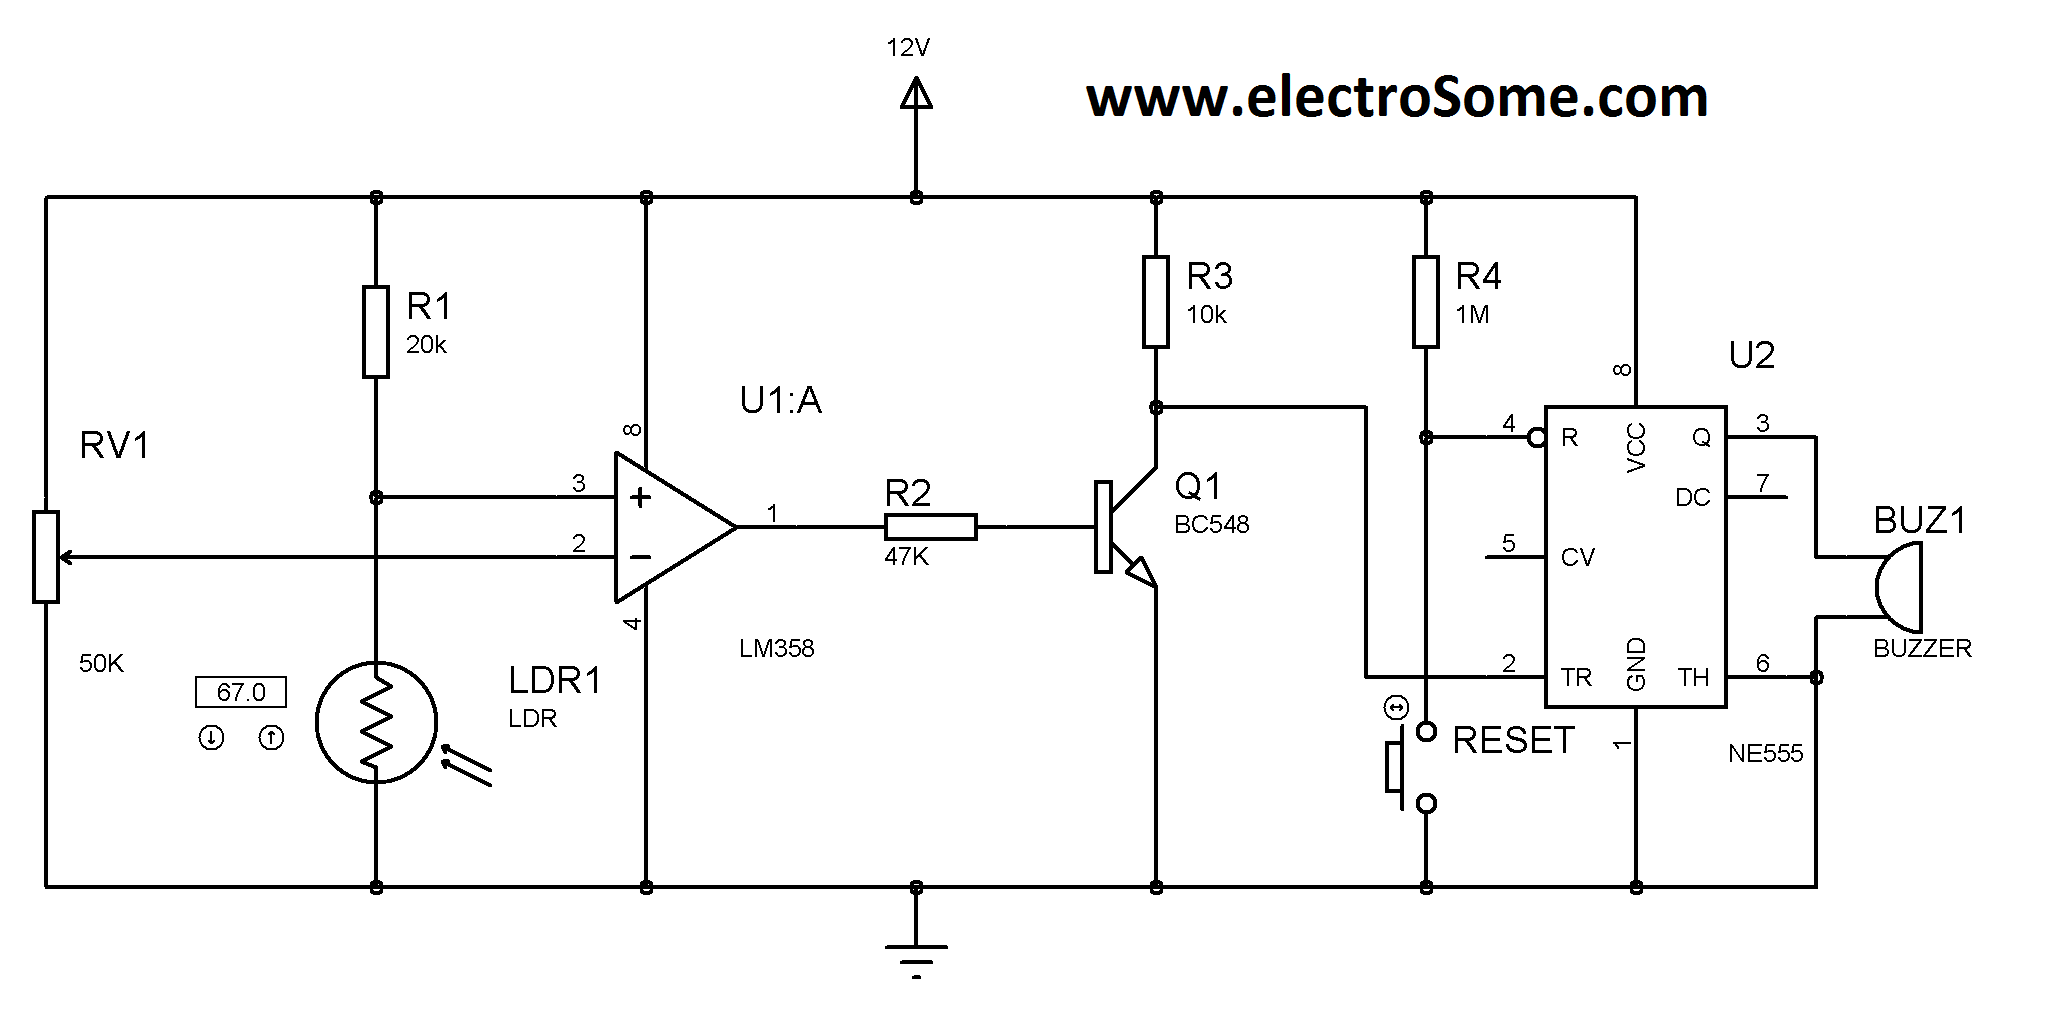 Laser Security System The 555 Timer Bistable Multivibrator Circuit You Can Find Circuits Diagram